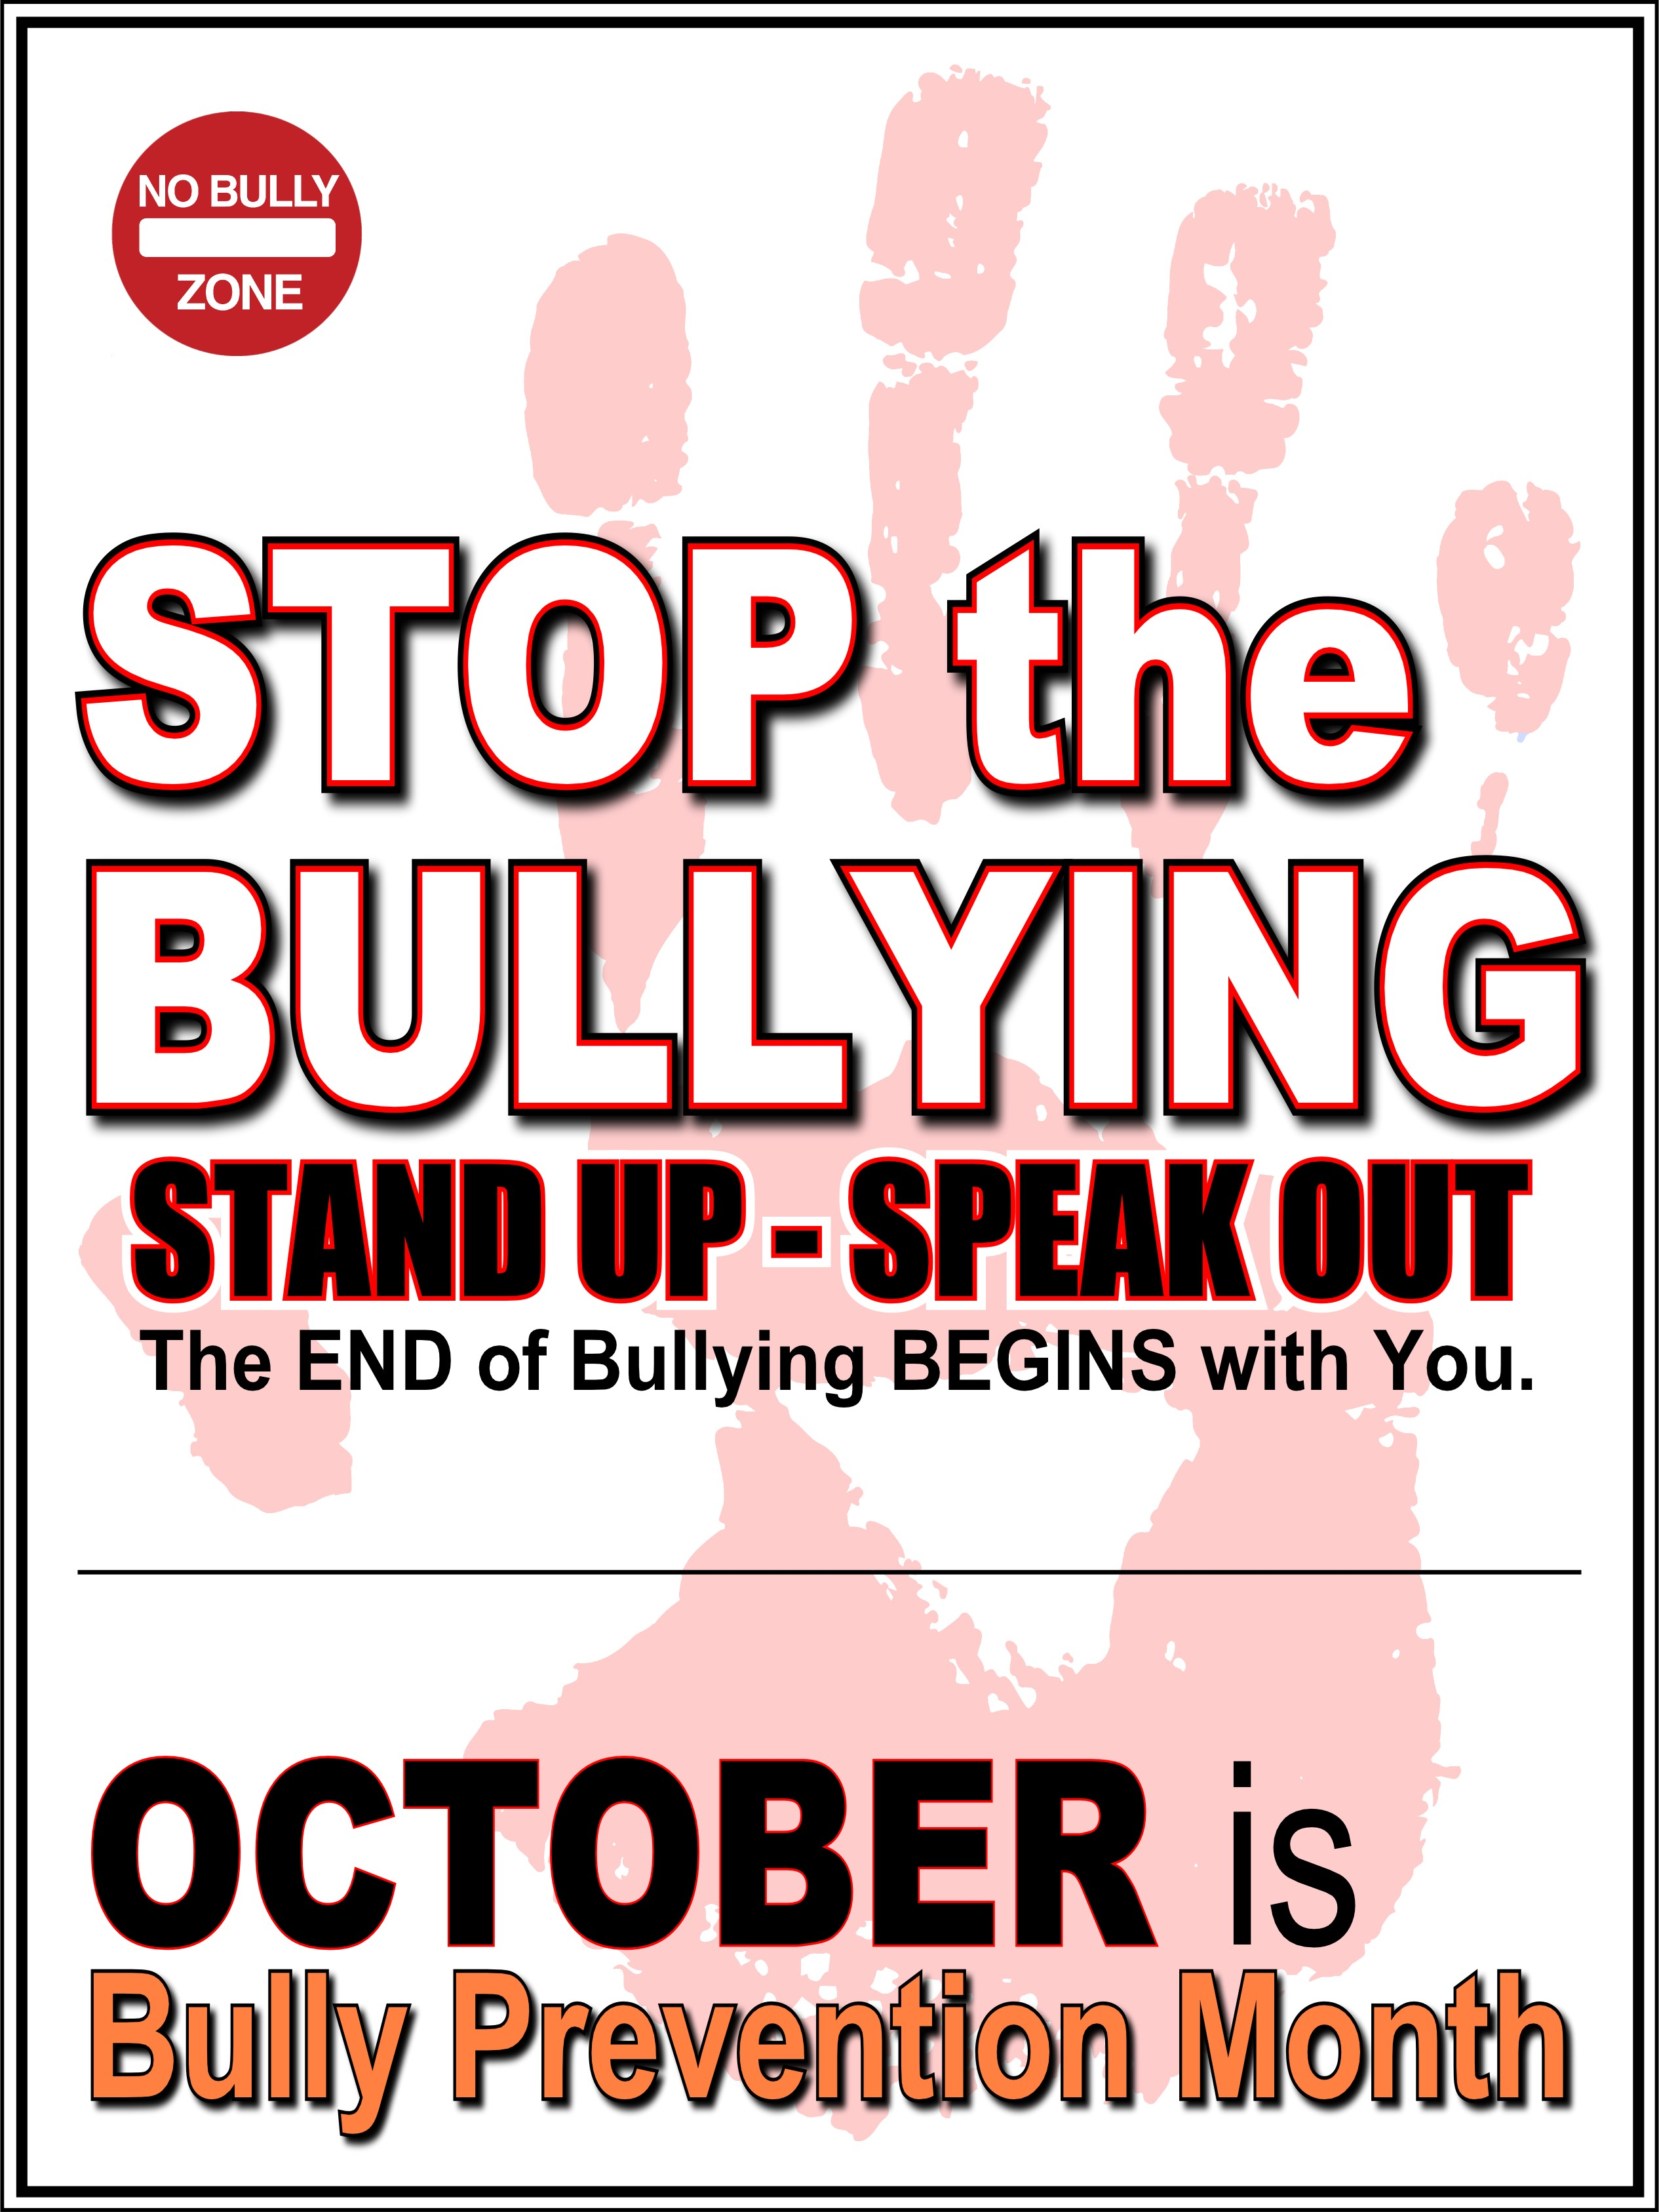 Bullying - fighting back